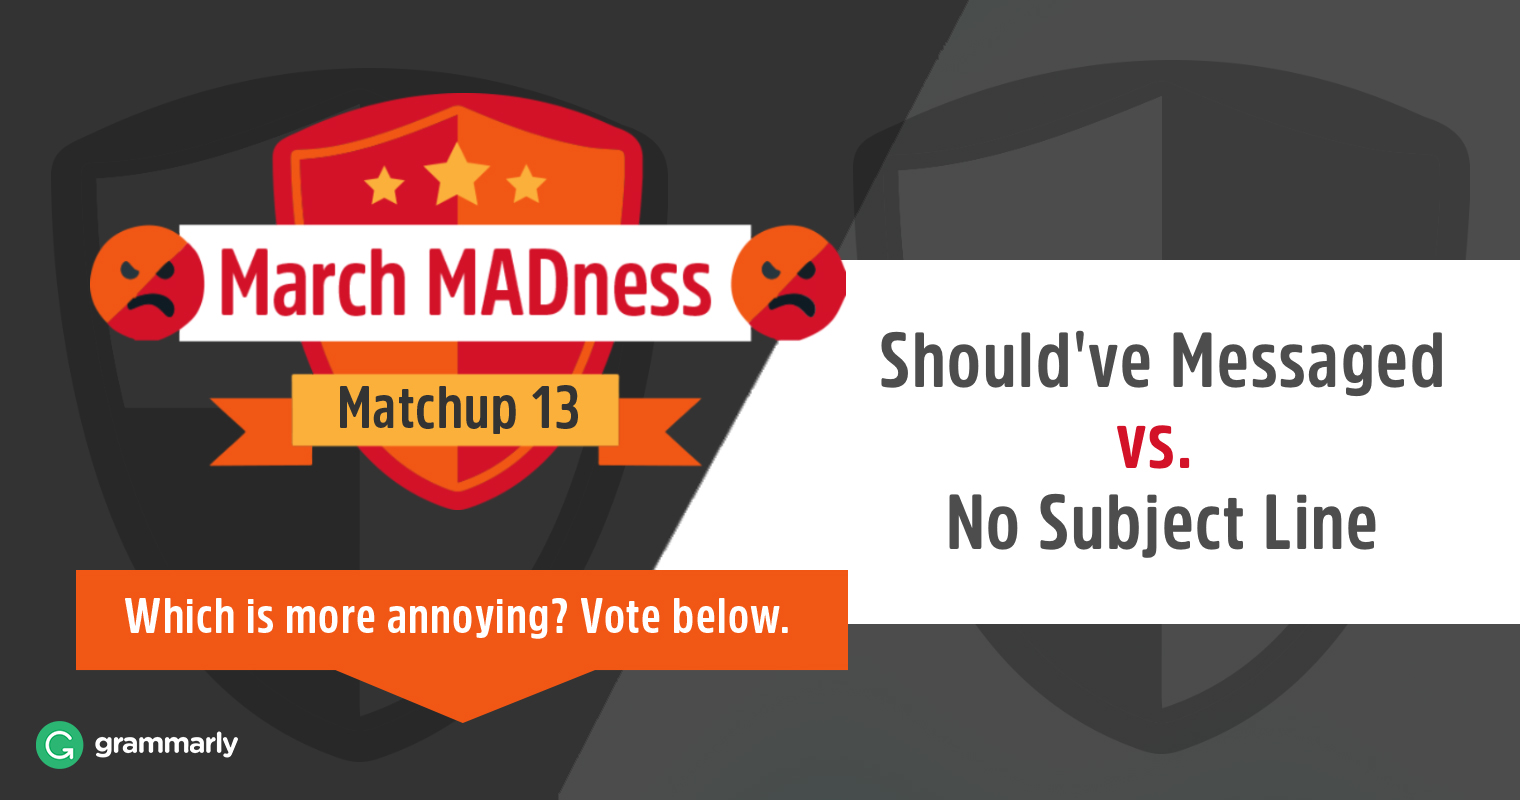 March MADness: Should've Messaged vs. No Subject Line image